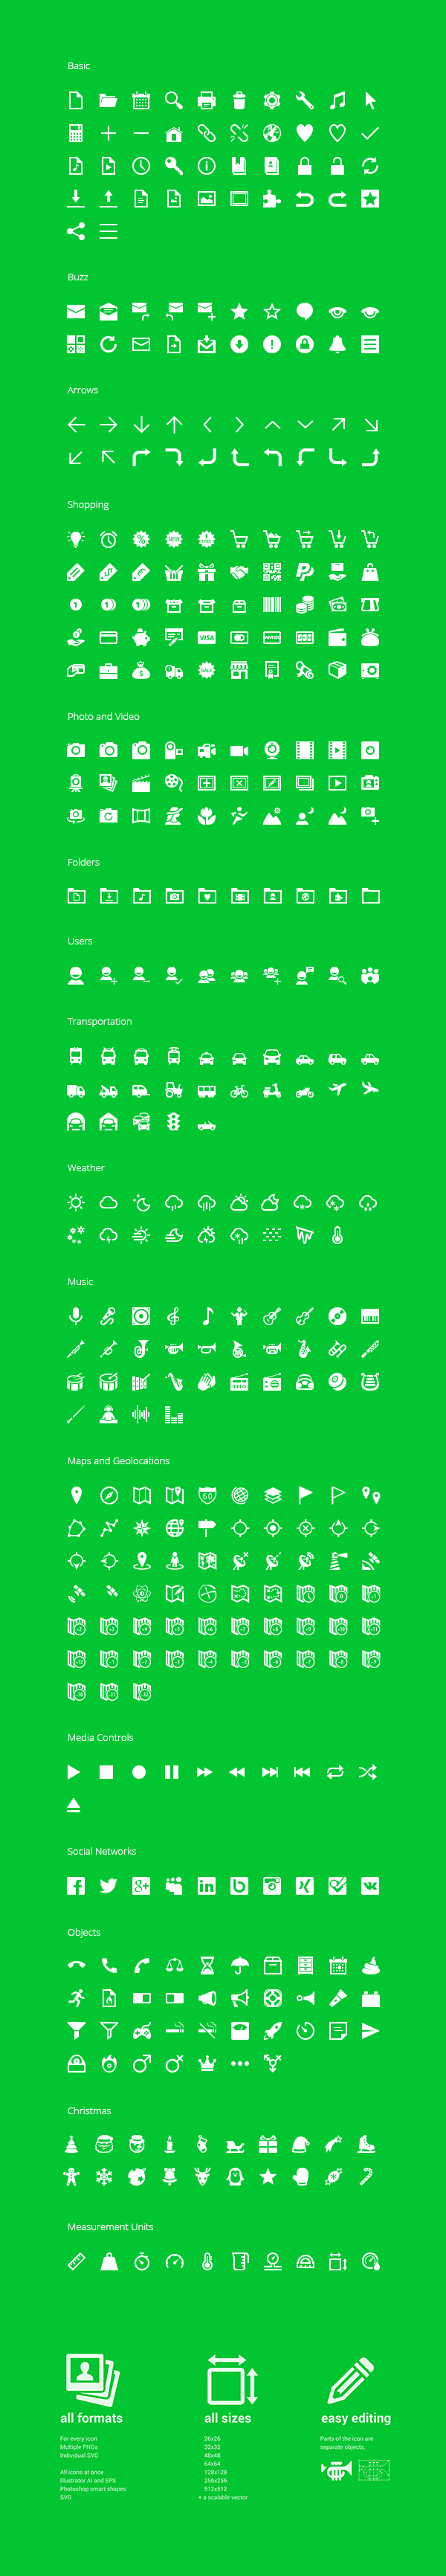 350-Free-Android-Icons-600